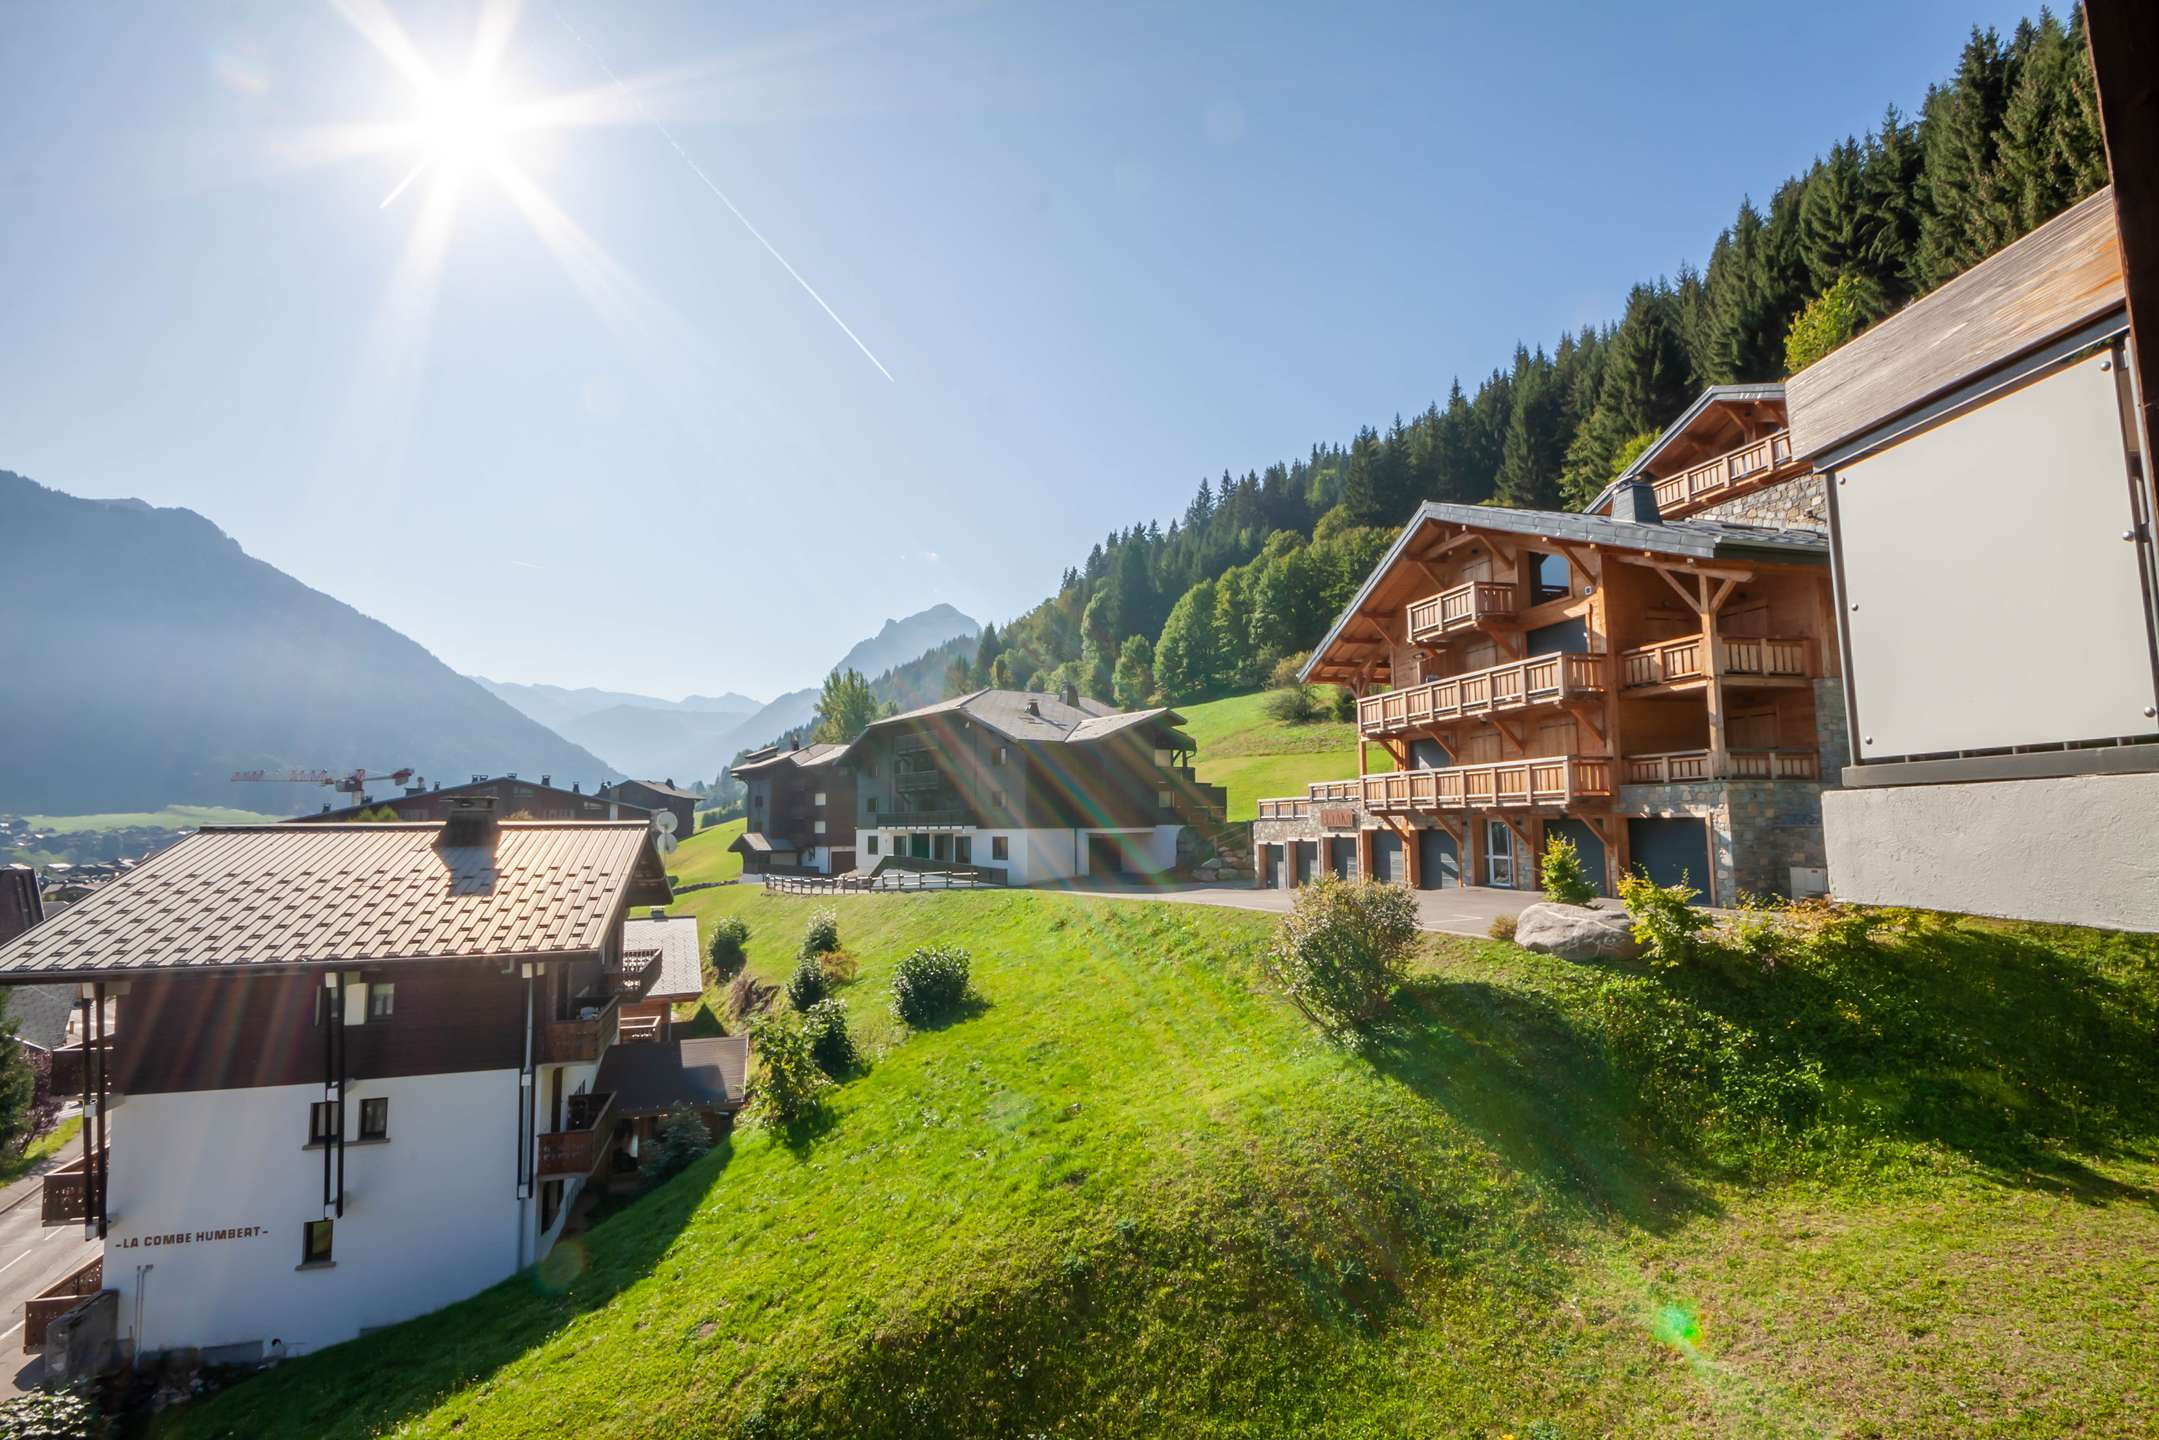 Location de vacances agence immobili re morzine immobilier - Location appartement 2 chambres ...